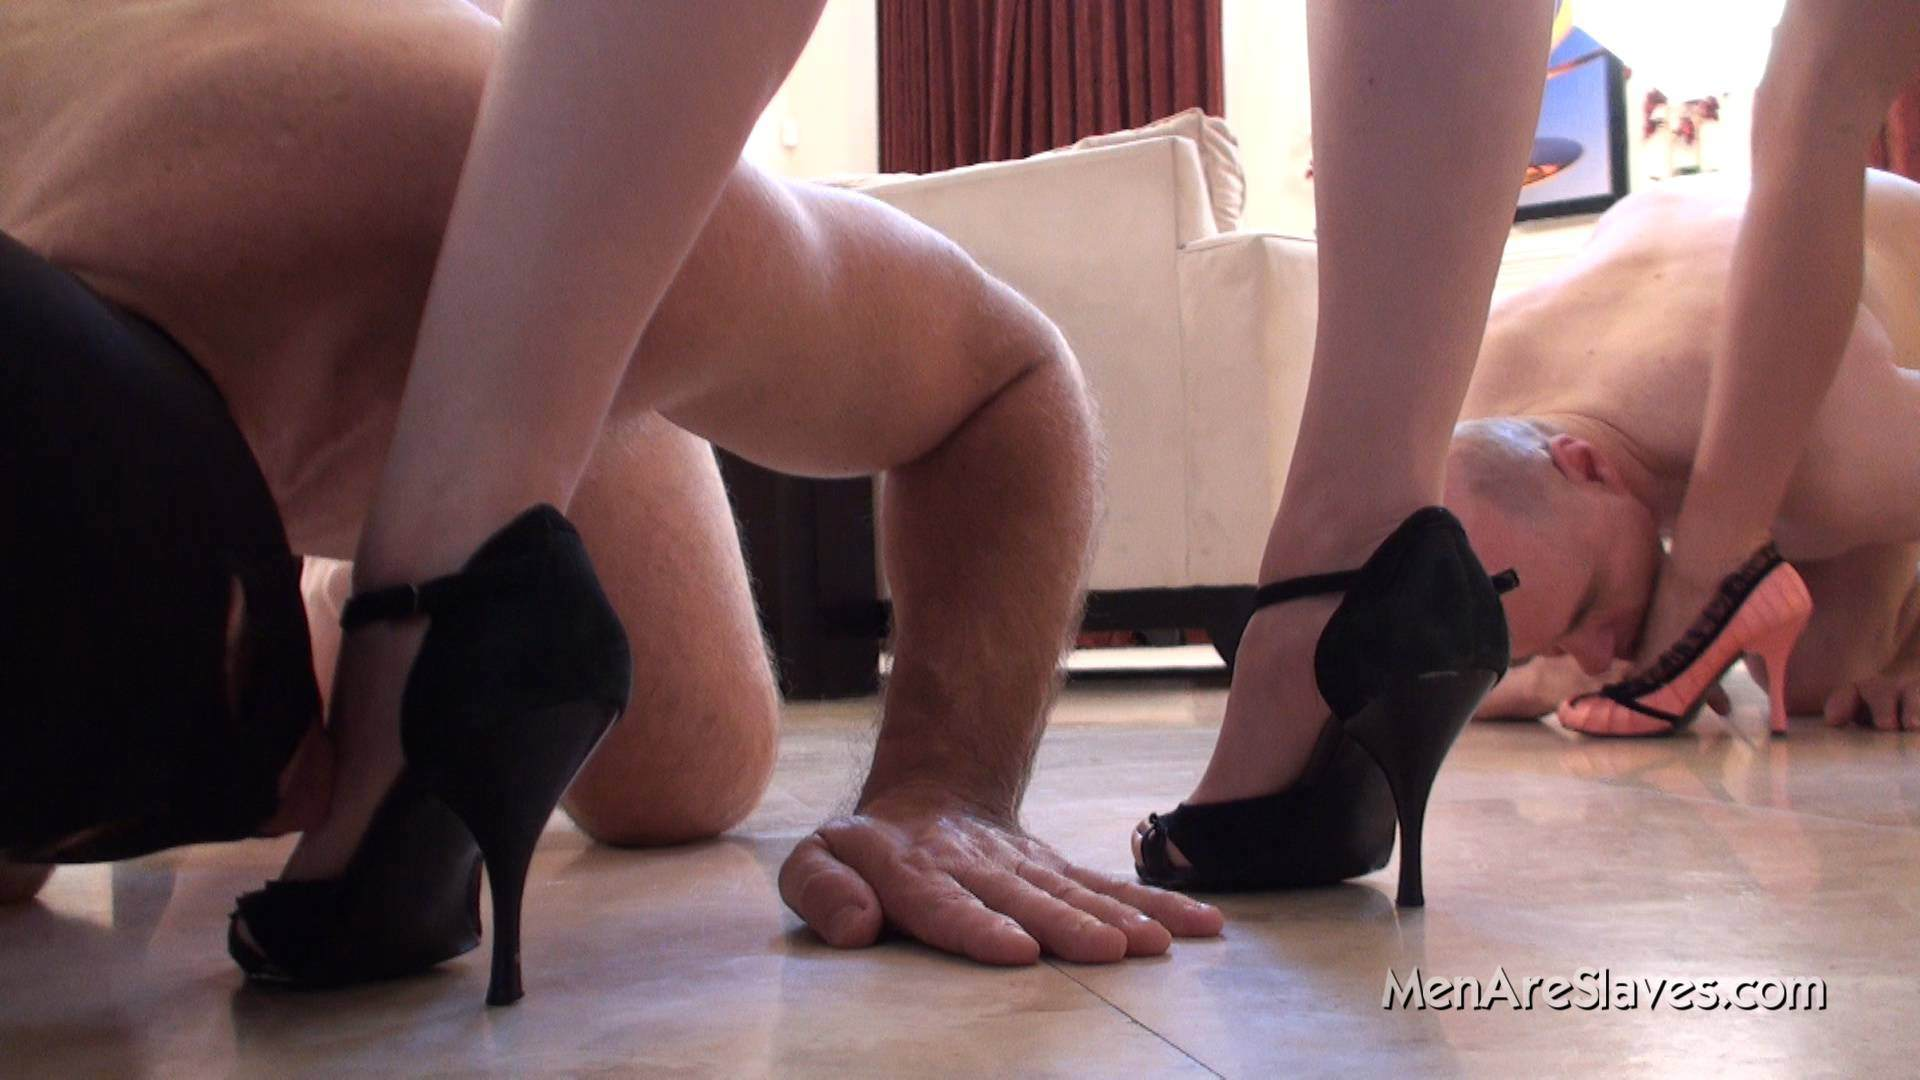 Picture #10 of Sluts returned home from their dates and kneeling slaves are there to kiss their feet and hoping to get whipped